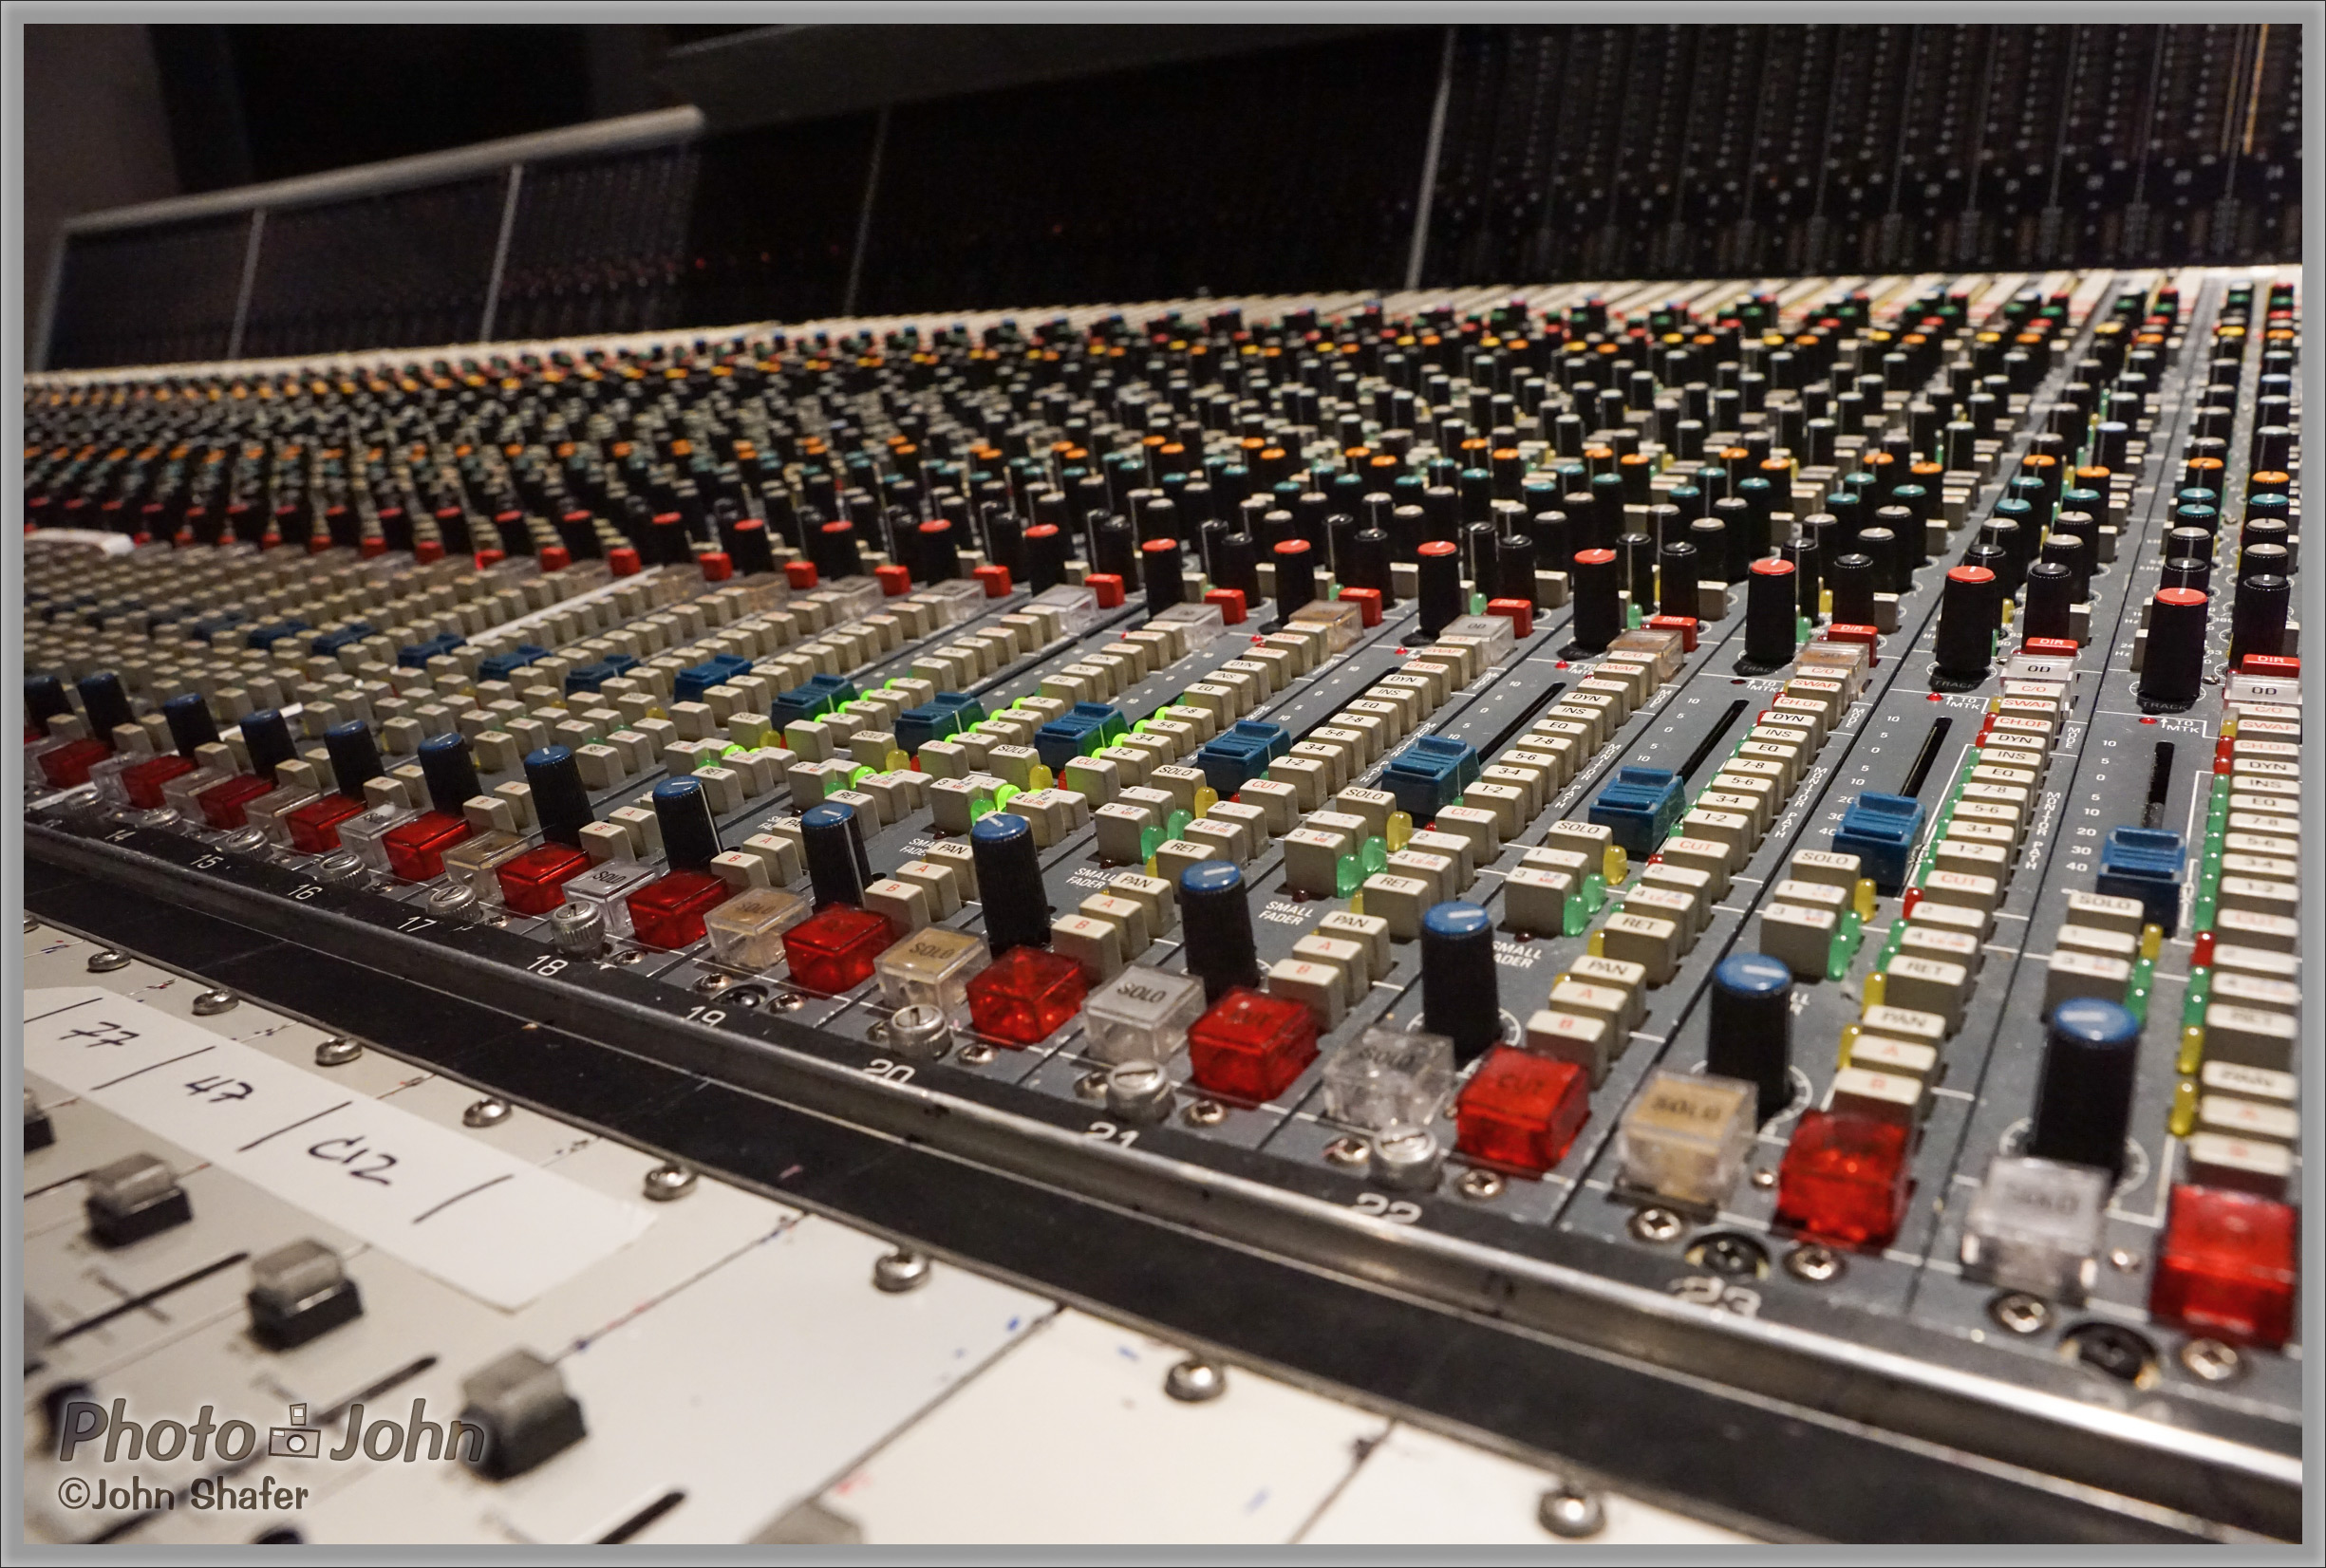 Recording Studio Mixing Board - Sony Alpha A7R - ISO 6400